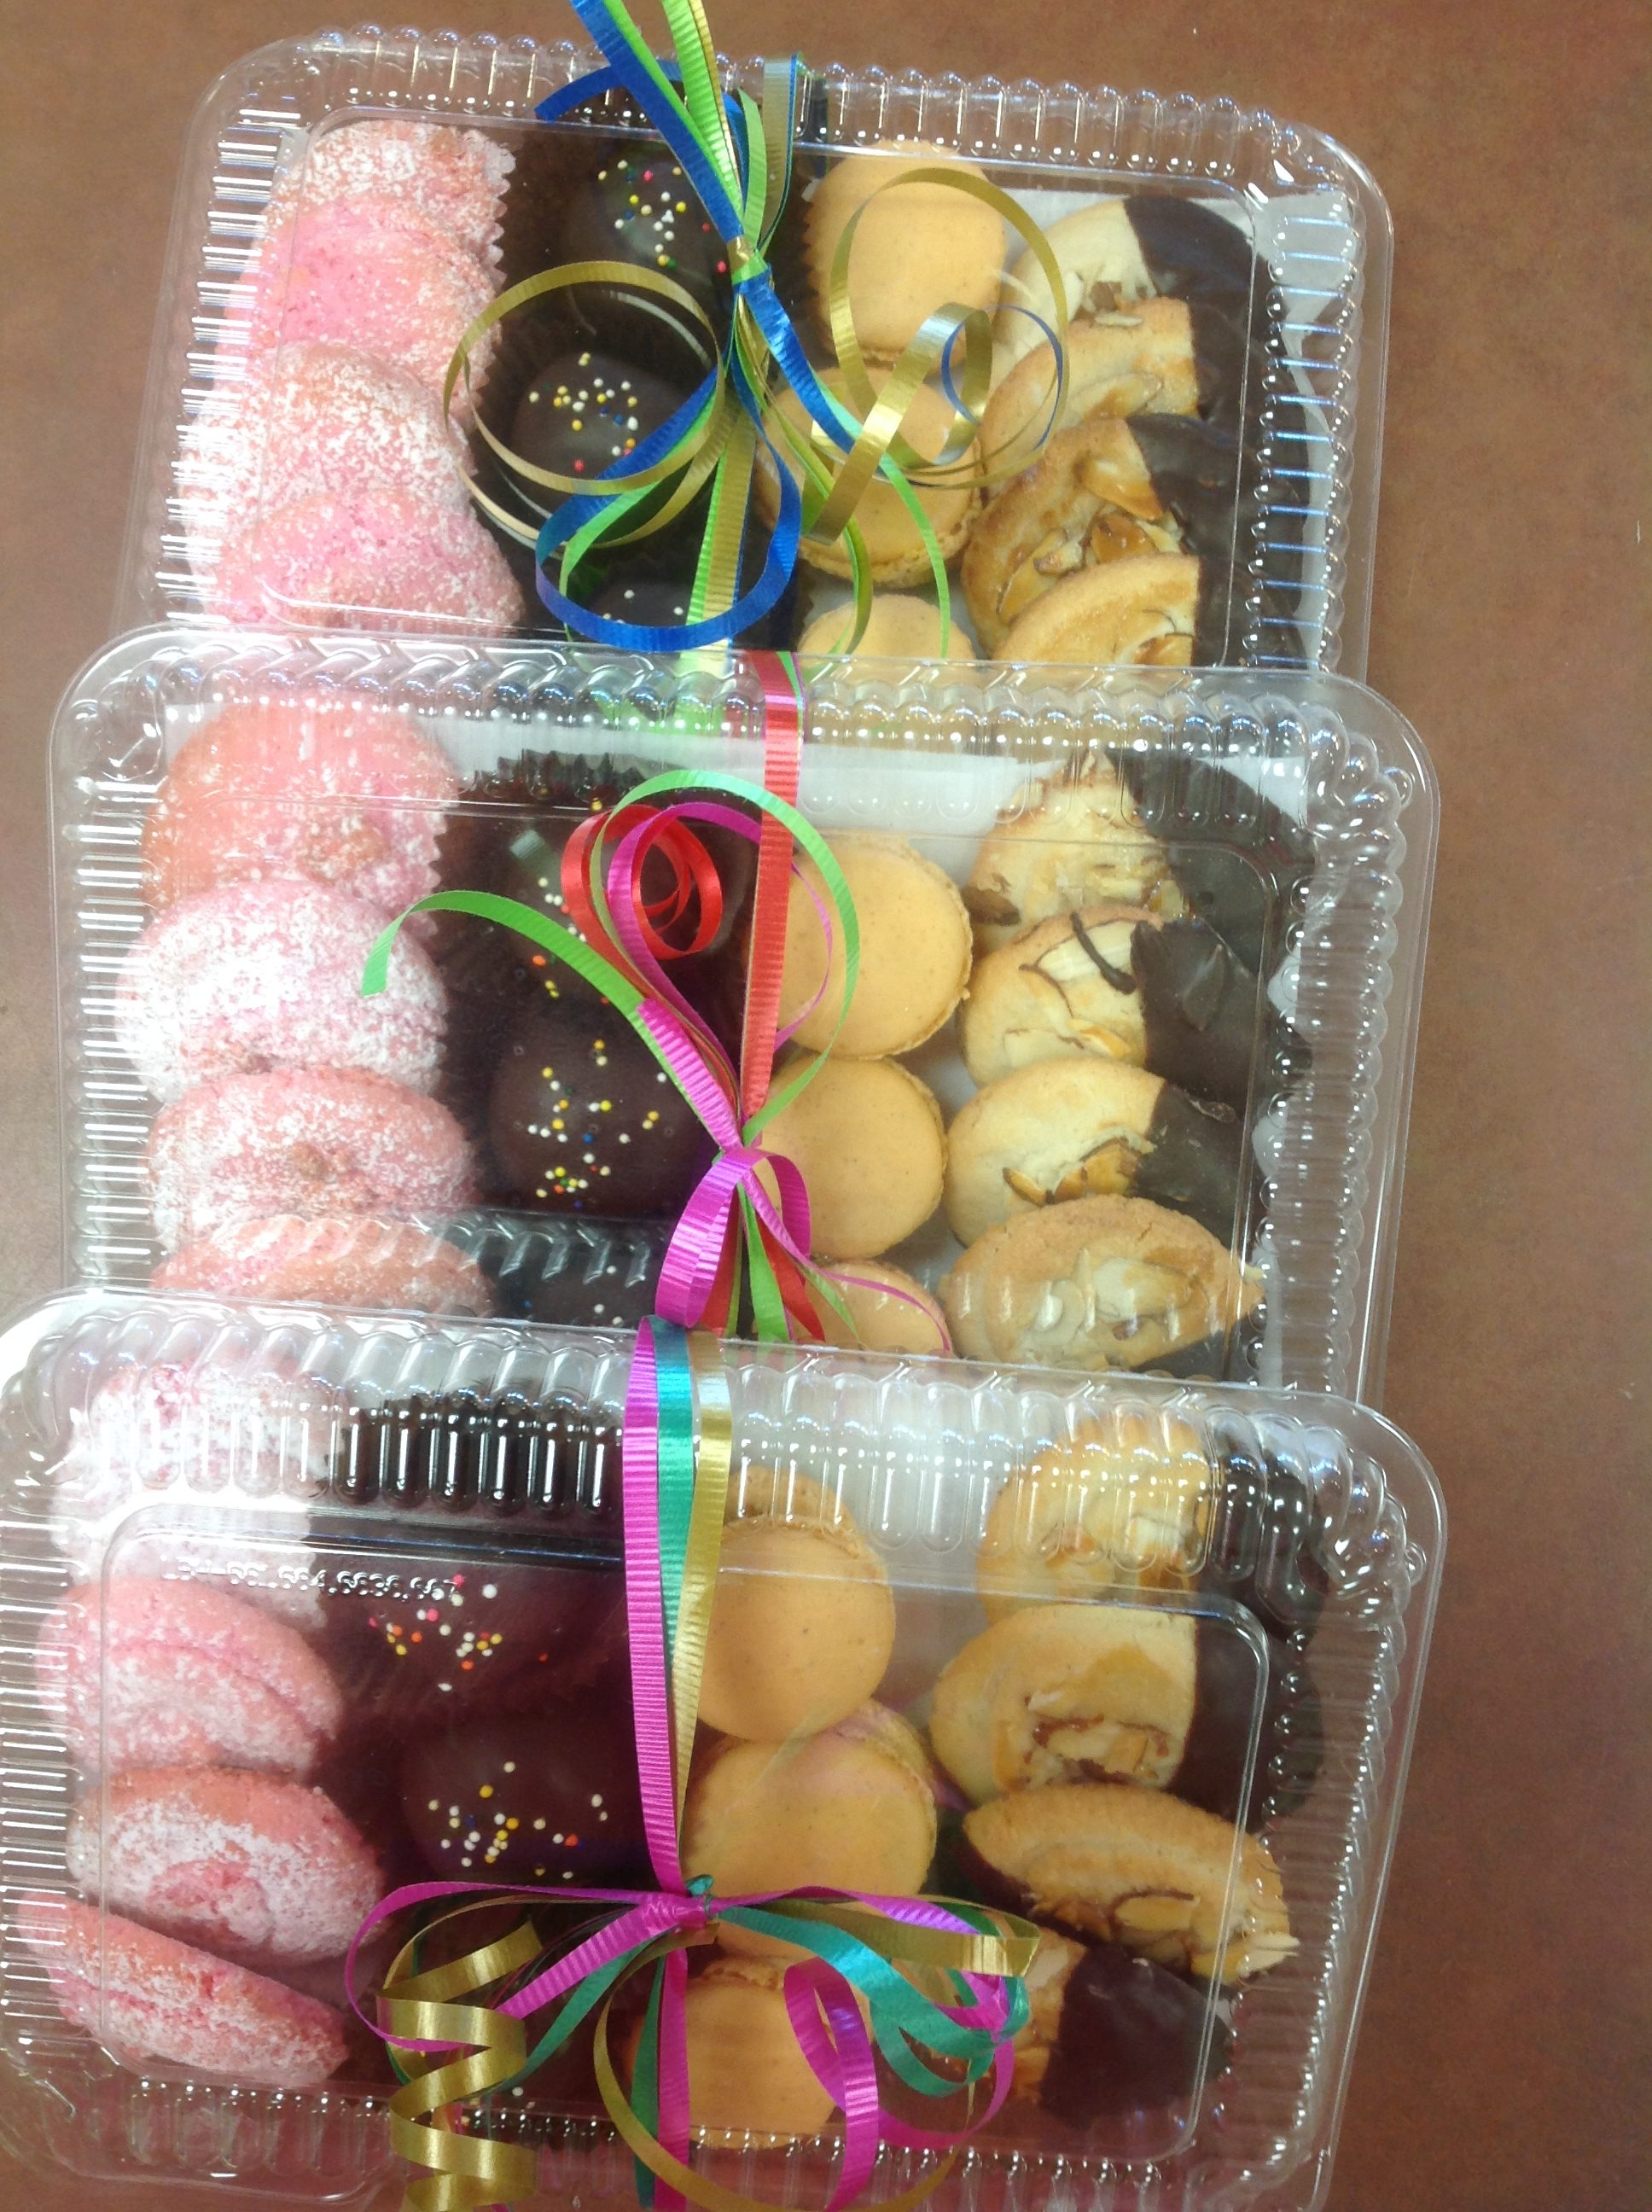 Gluten free cookie platters at Dolce and Biscotti Italian Bakery